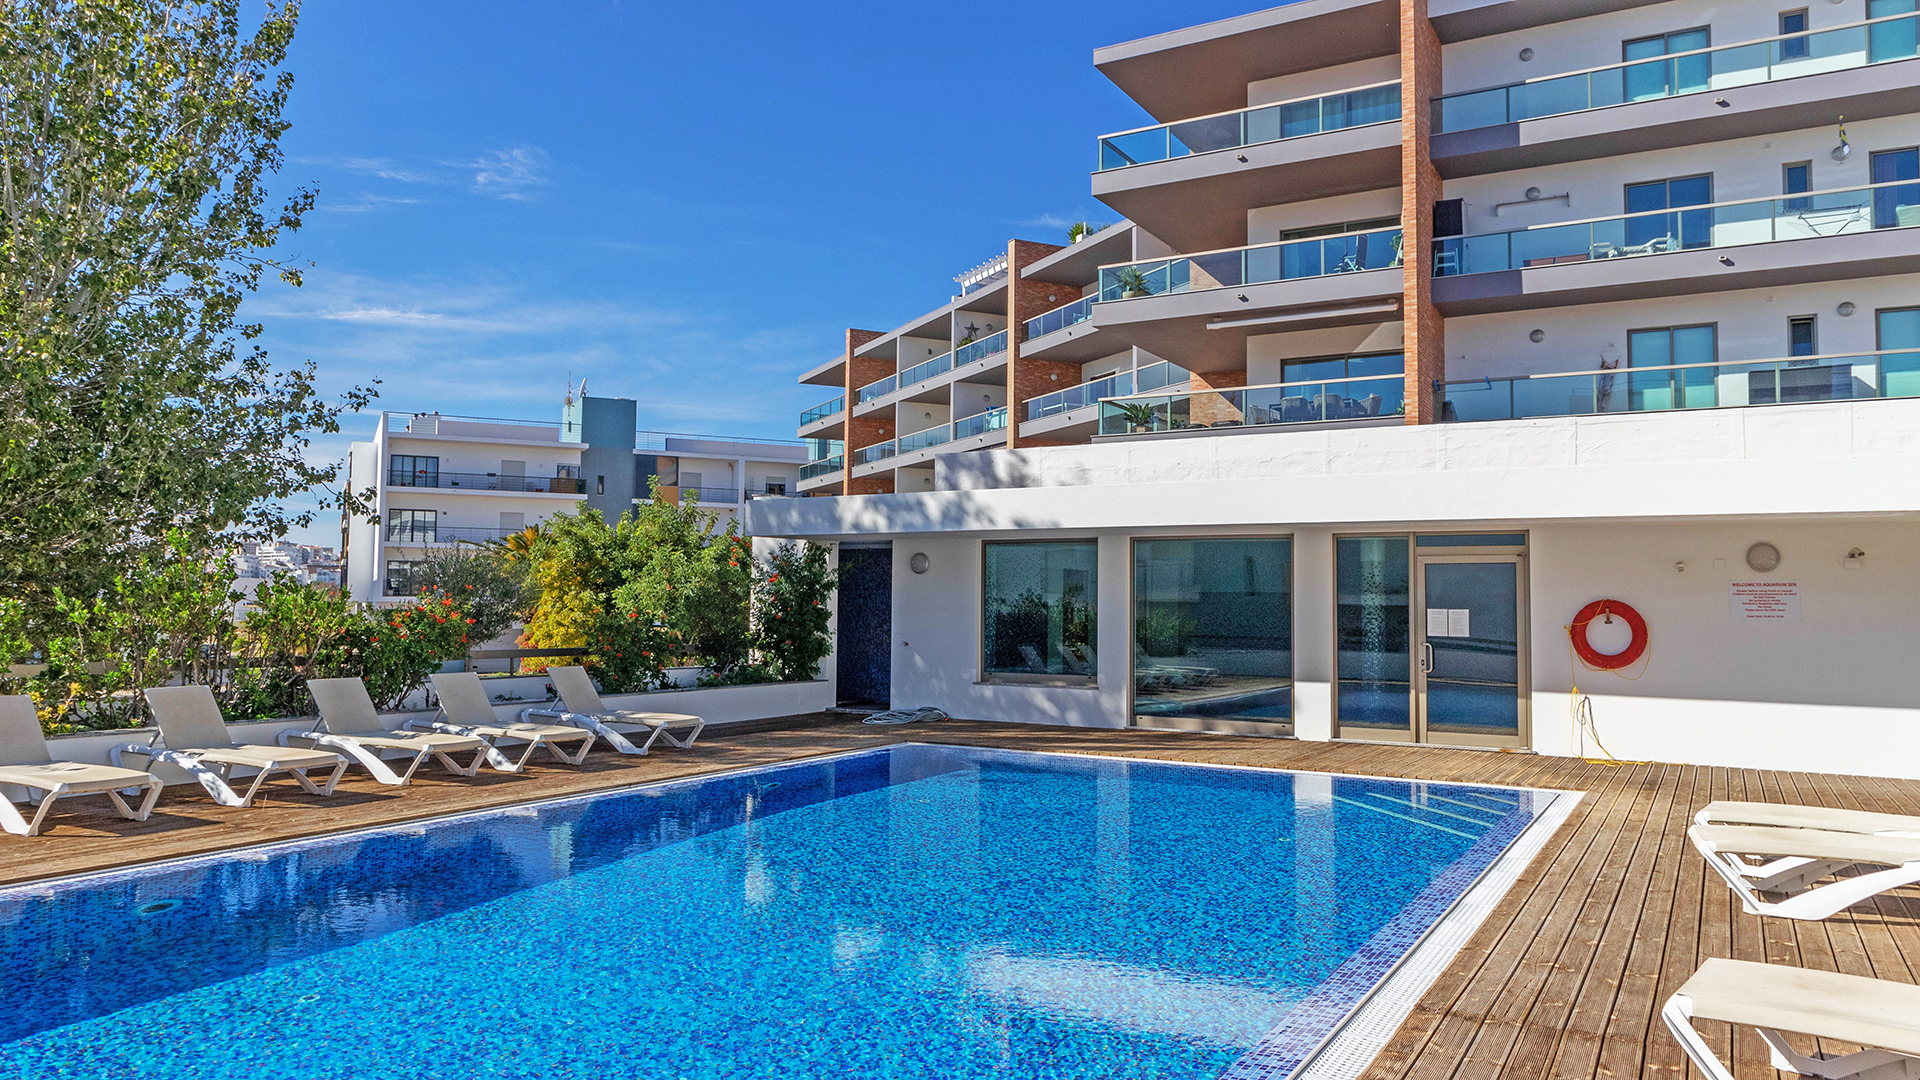 Stunning, 2 bedroom apartment with indoor & outdoor pools, near beach & marina, Lagos, Algarve | LG1556 Immaculate, modern 2 bedroom, 2 bathroom apartment close to Meia Praia beach and Lagos marina.  Benefitting from a south-east facing terrace with sea view. The apartment boasts both indoor & outdoor communal pools, air conditioning, underground parking and a storage room. An ideal property for rental investment, holiday home or due to proximity to amenities, permanent residence too. Must be viewed!